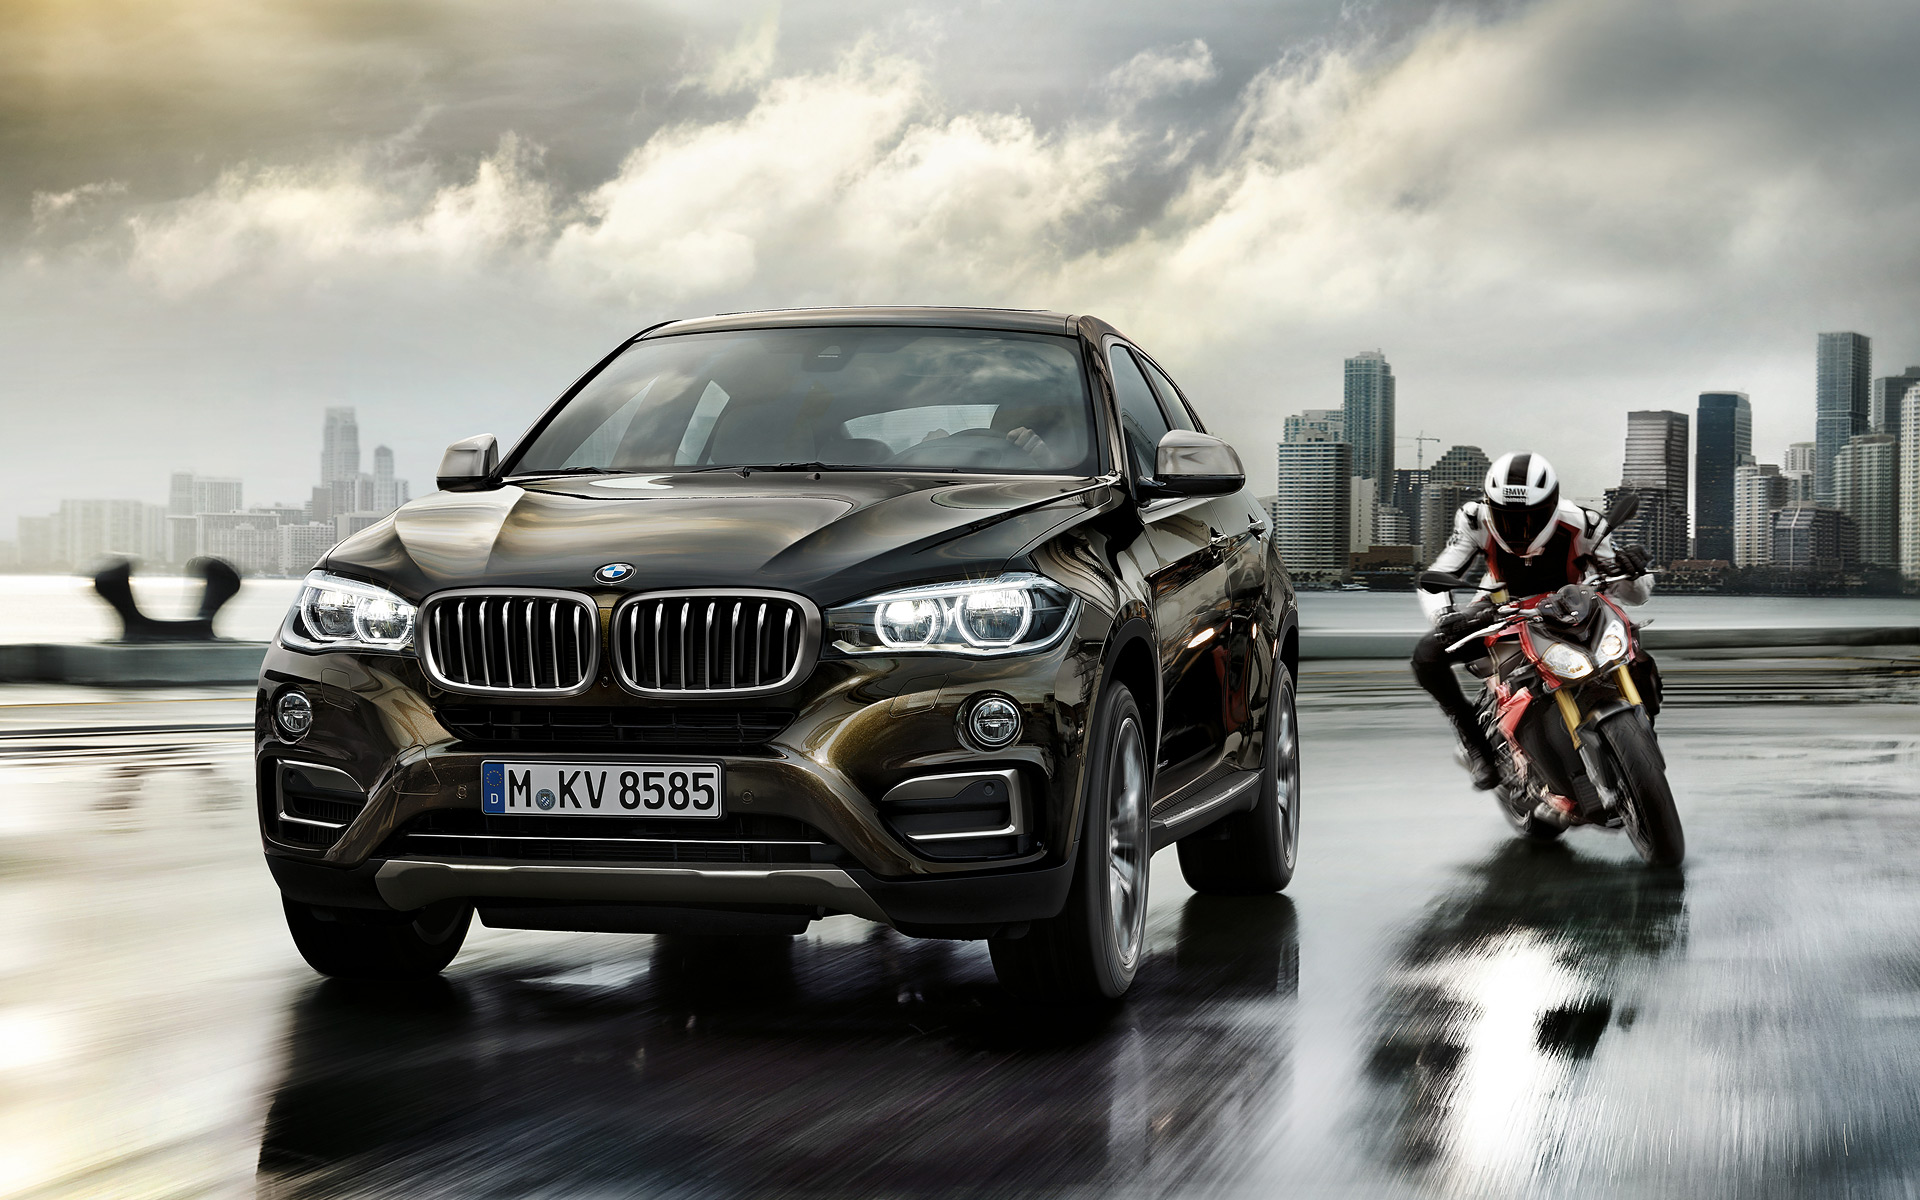 BMW X6 Wallpaper Widescreen Cars